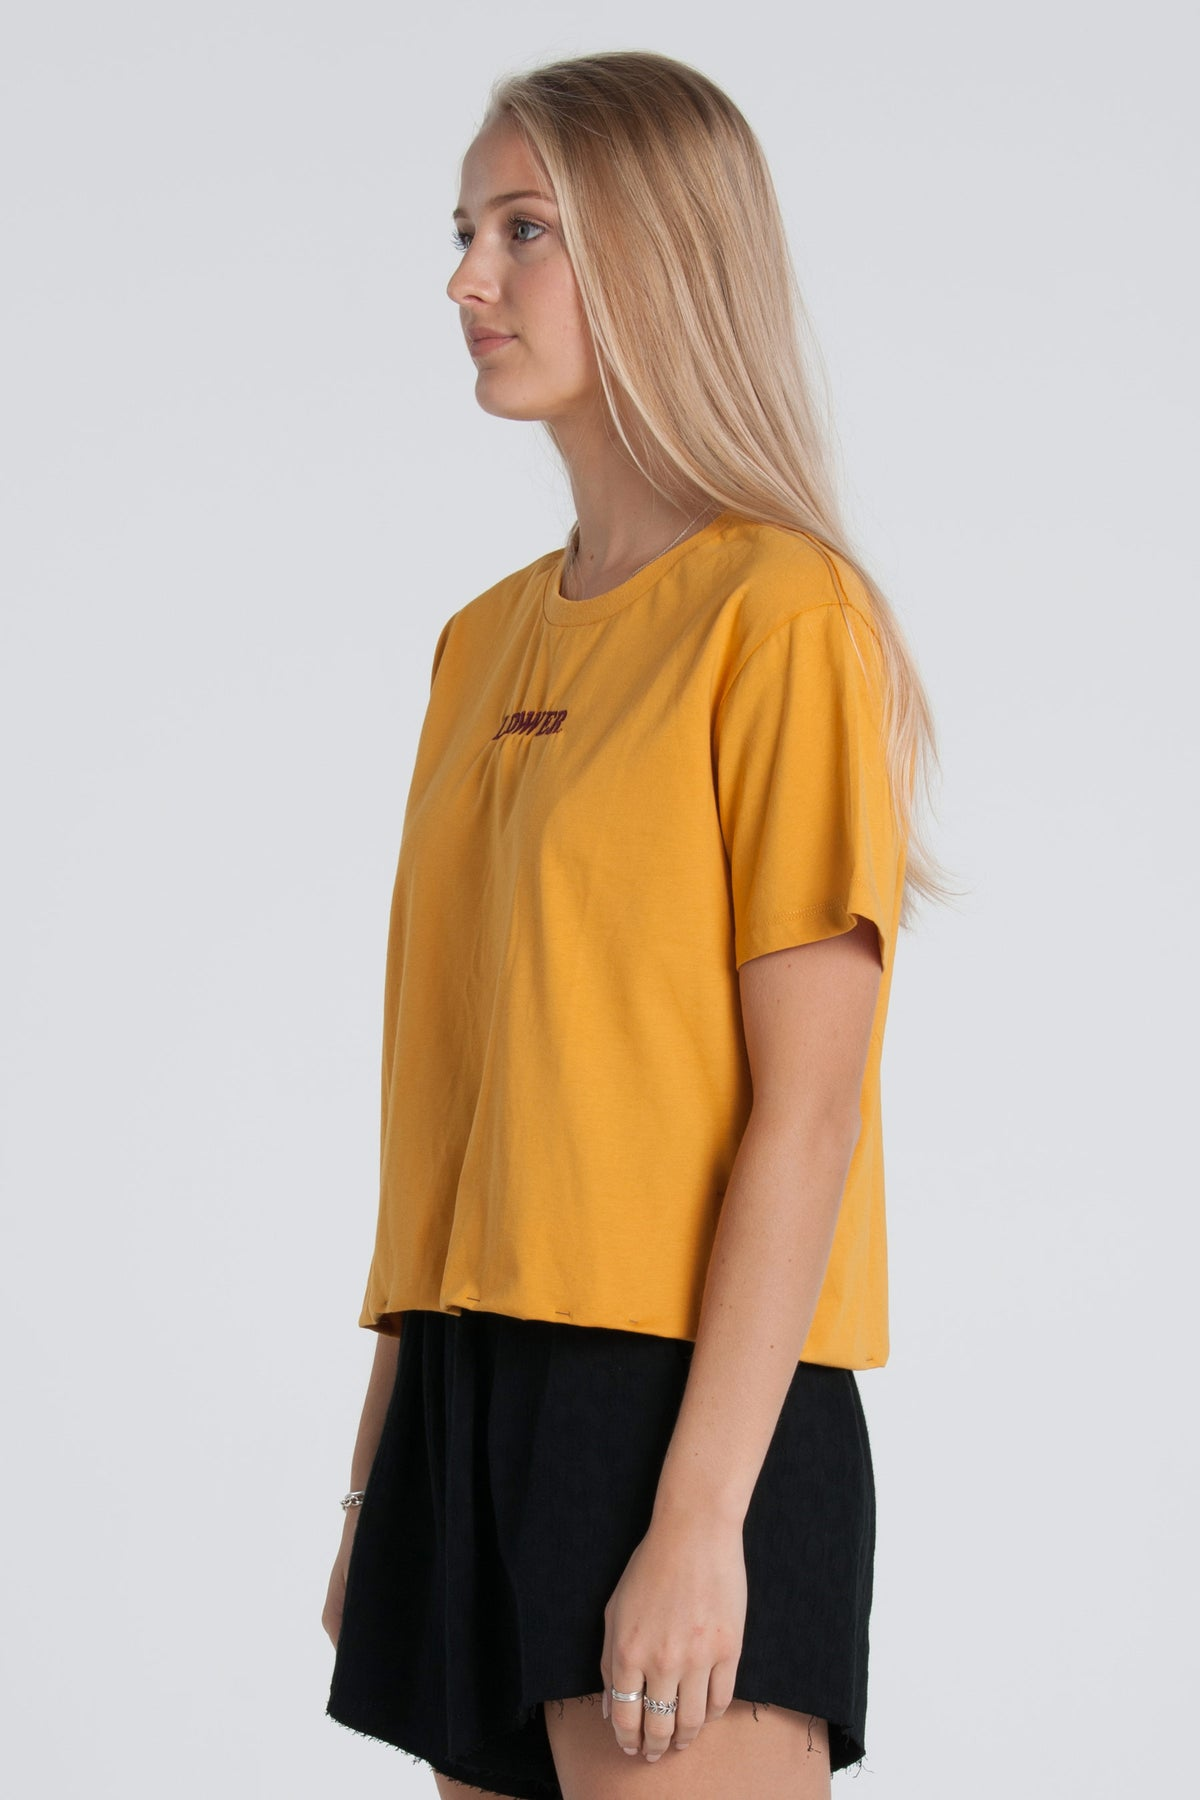 Cherry Ripe Cropped Tee - Gold